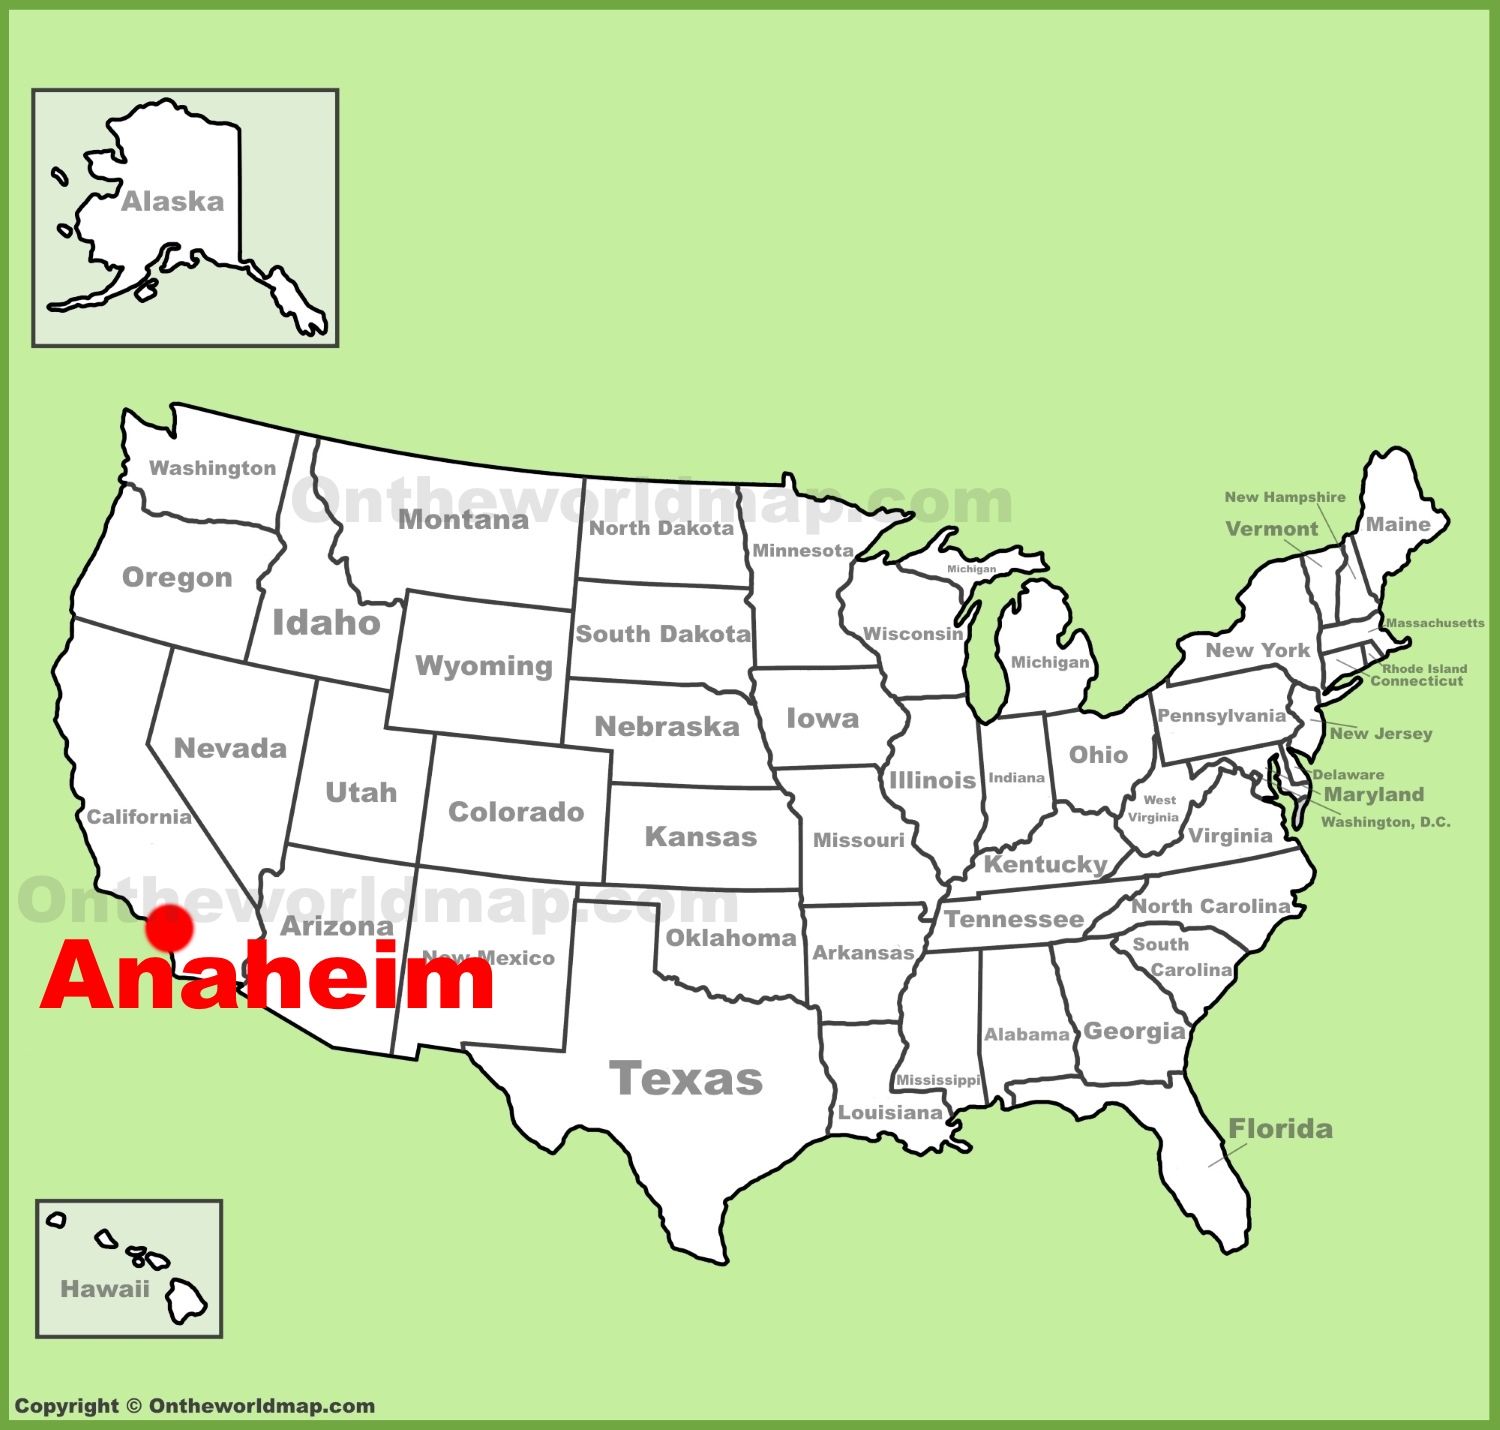 Anaheim location on the US Map